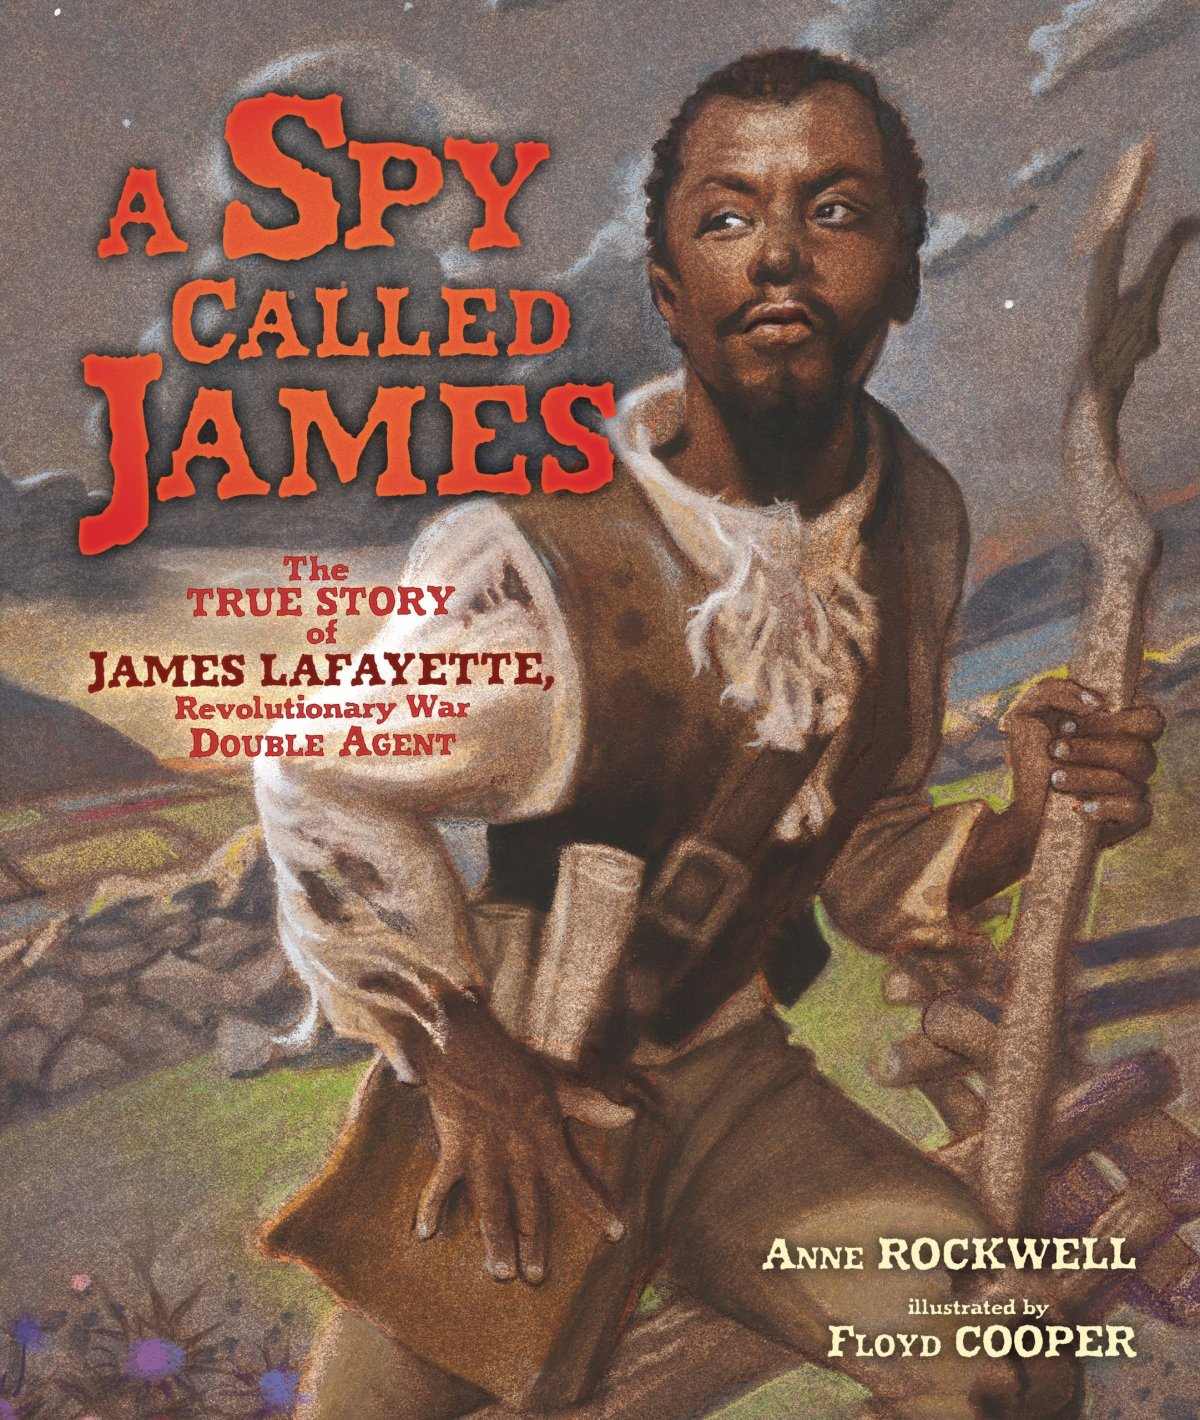 a spy called james cover image